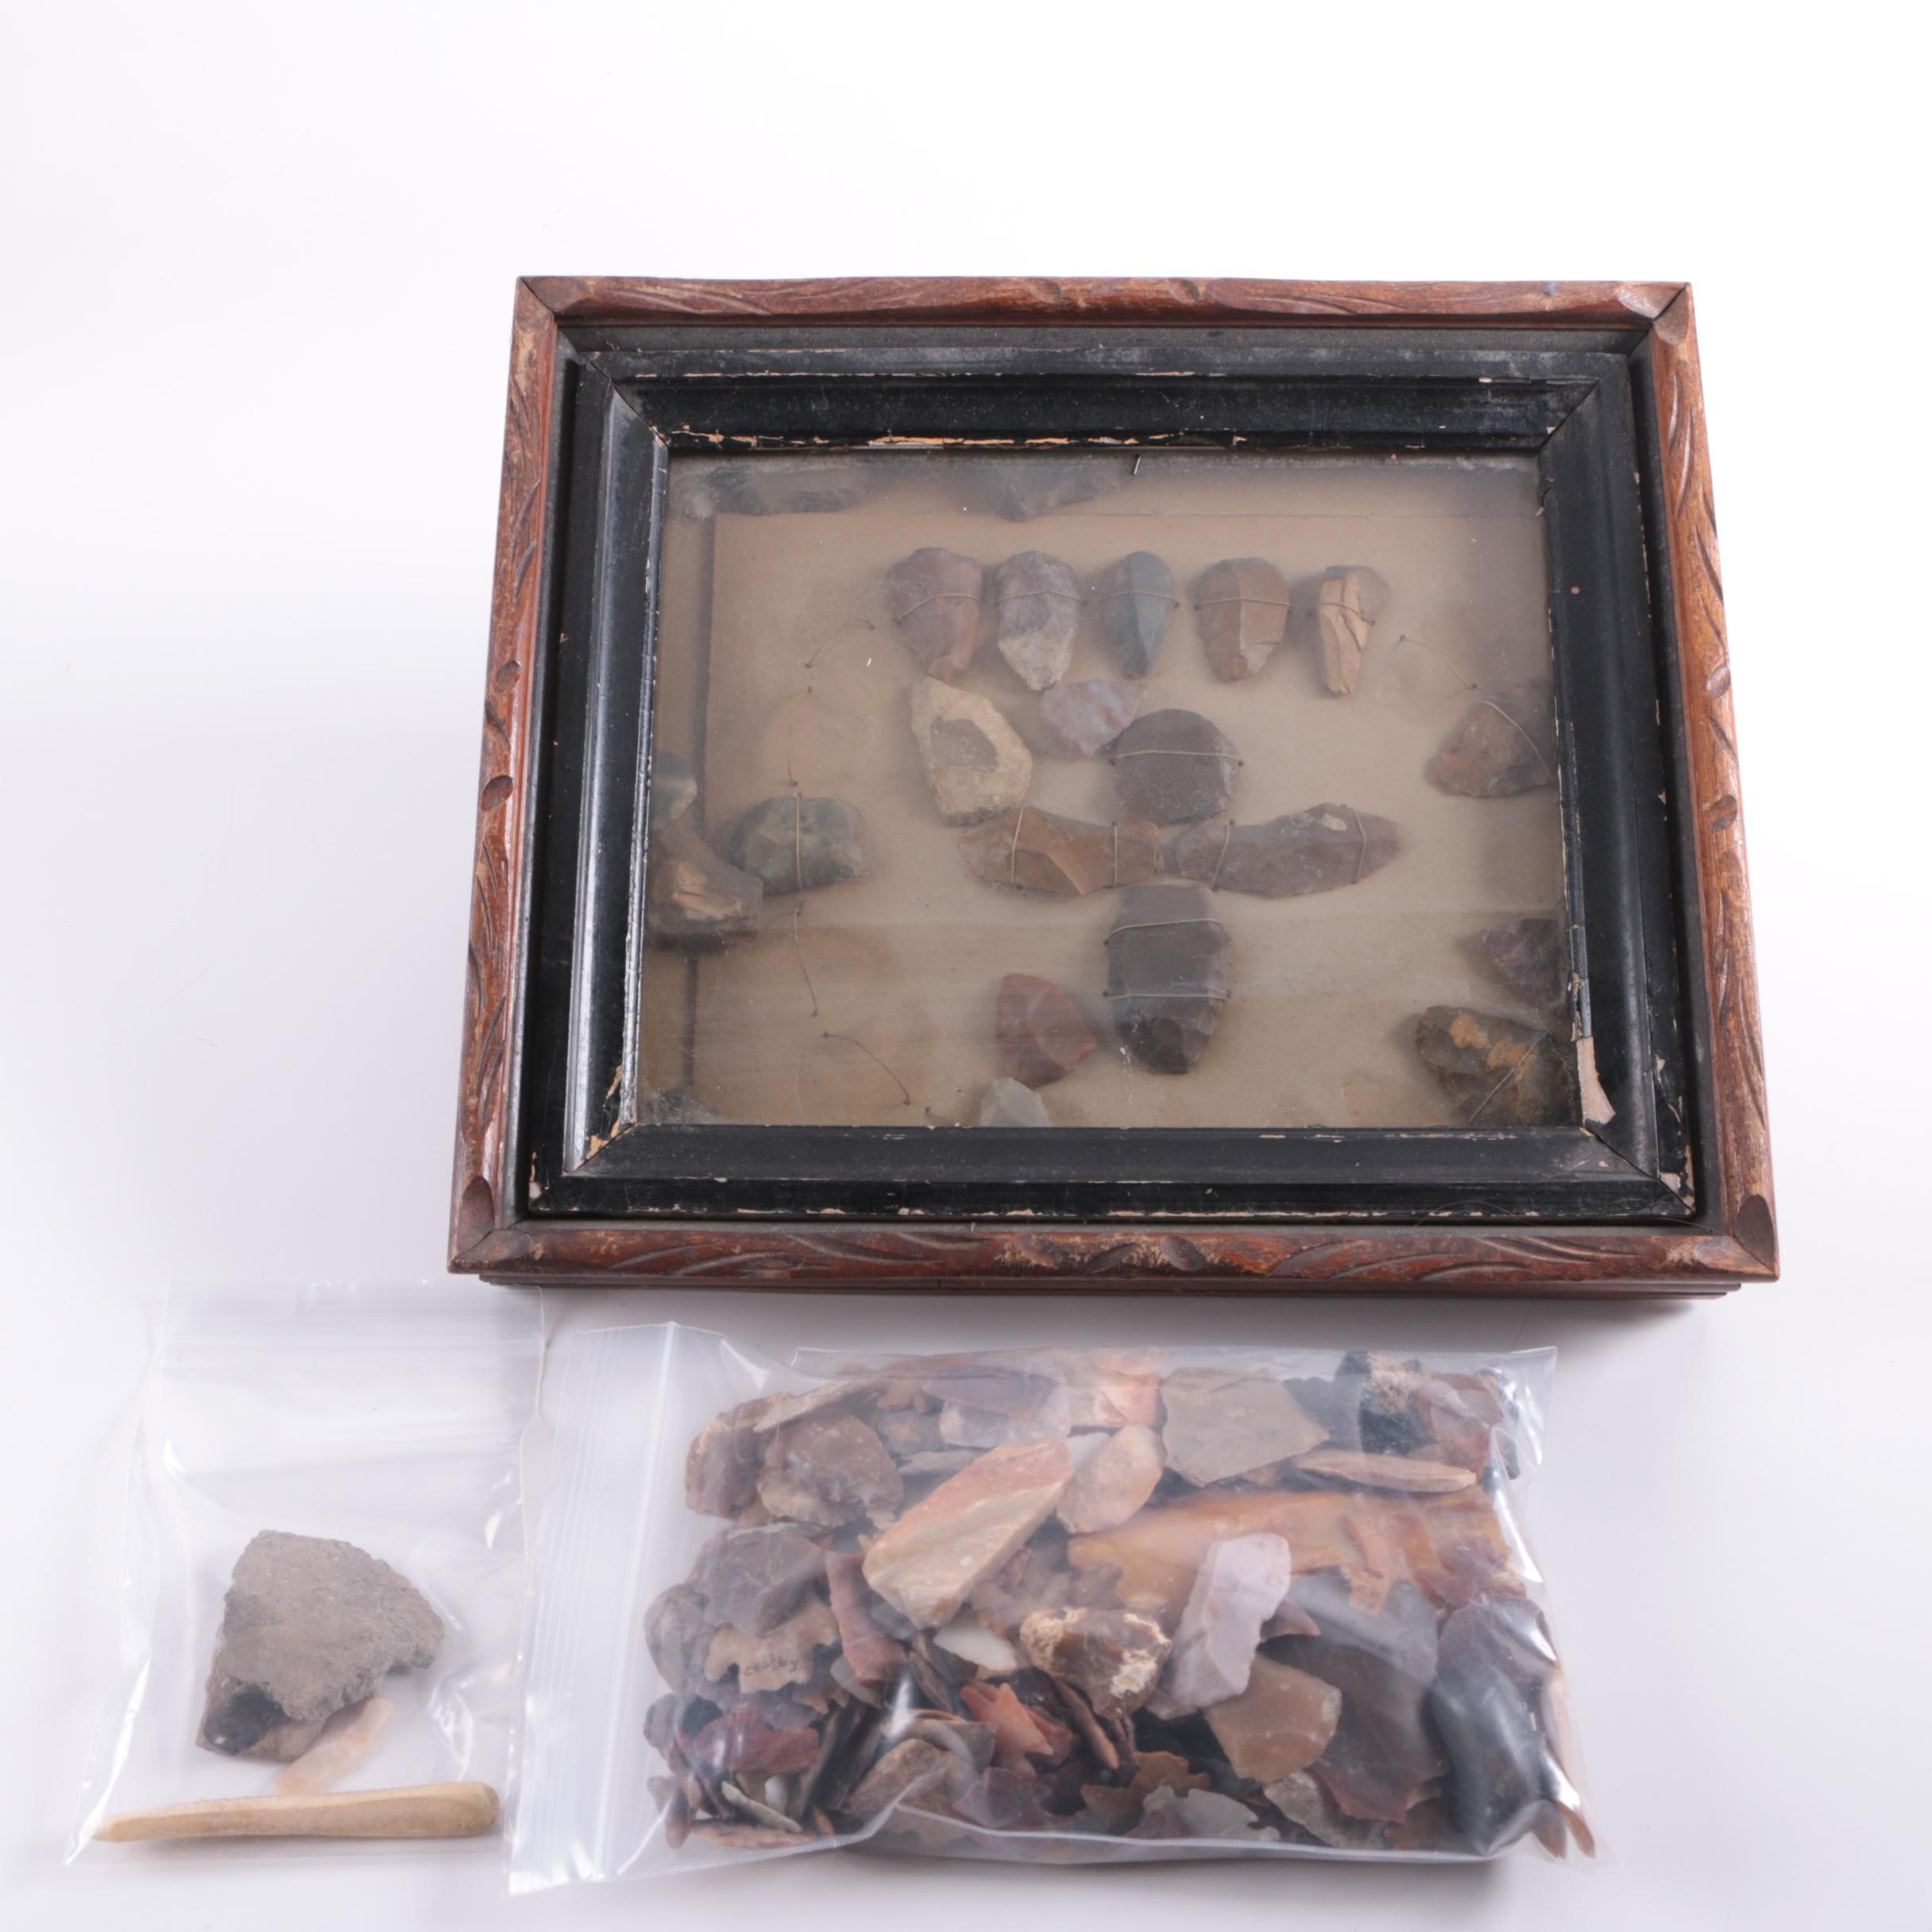 Geologic and Archaeological Specimens